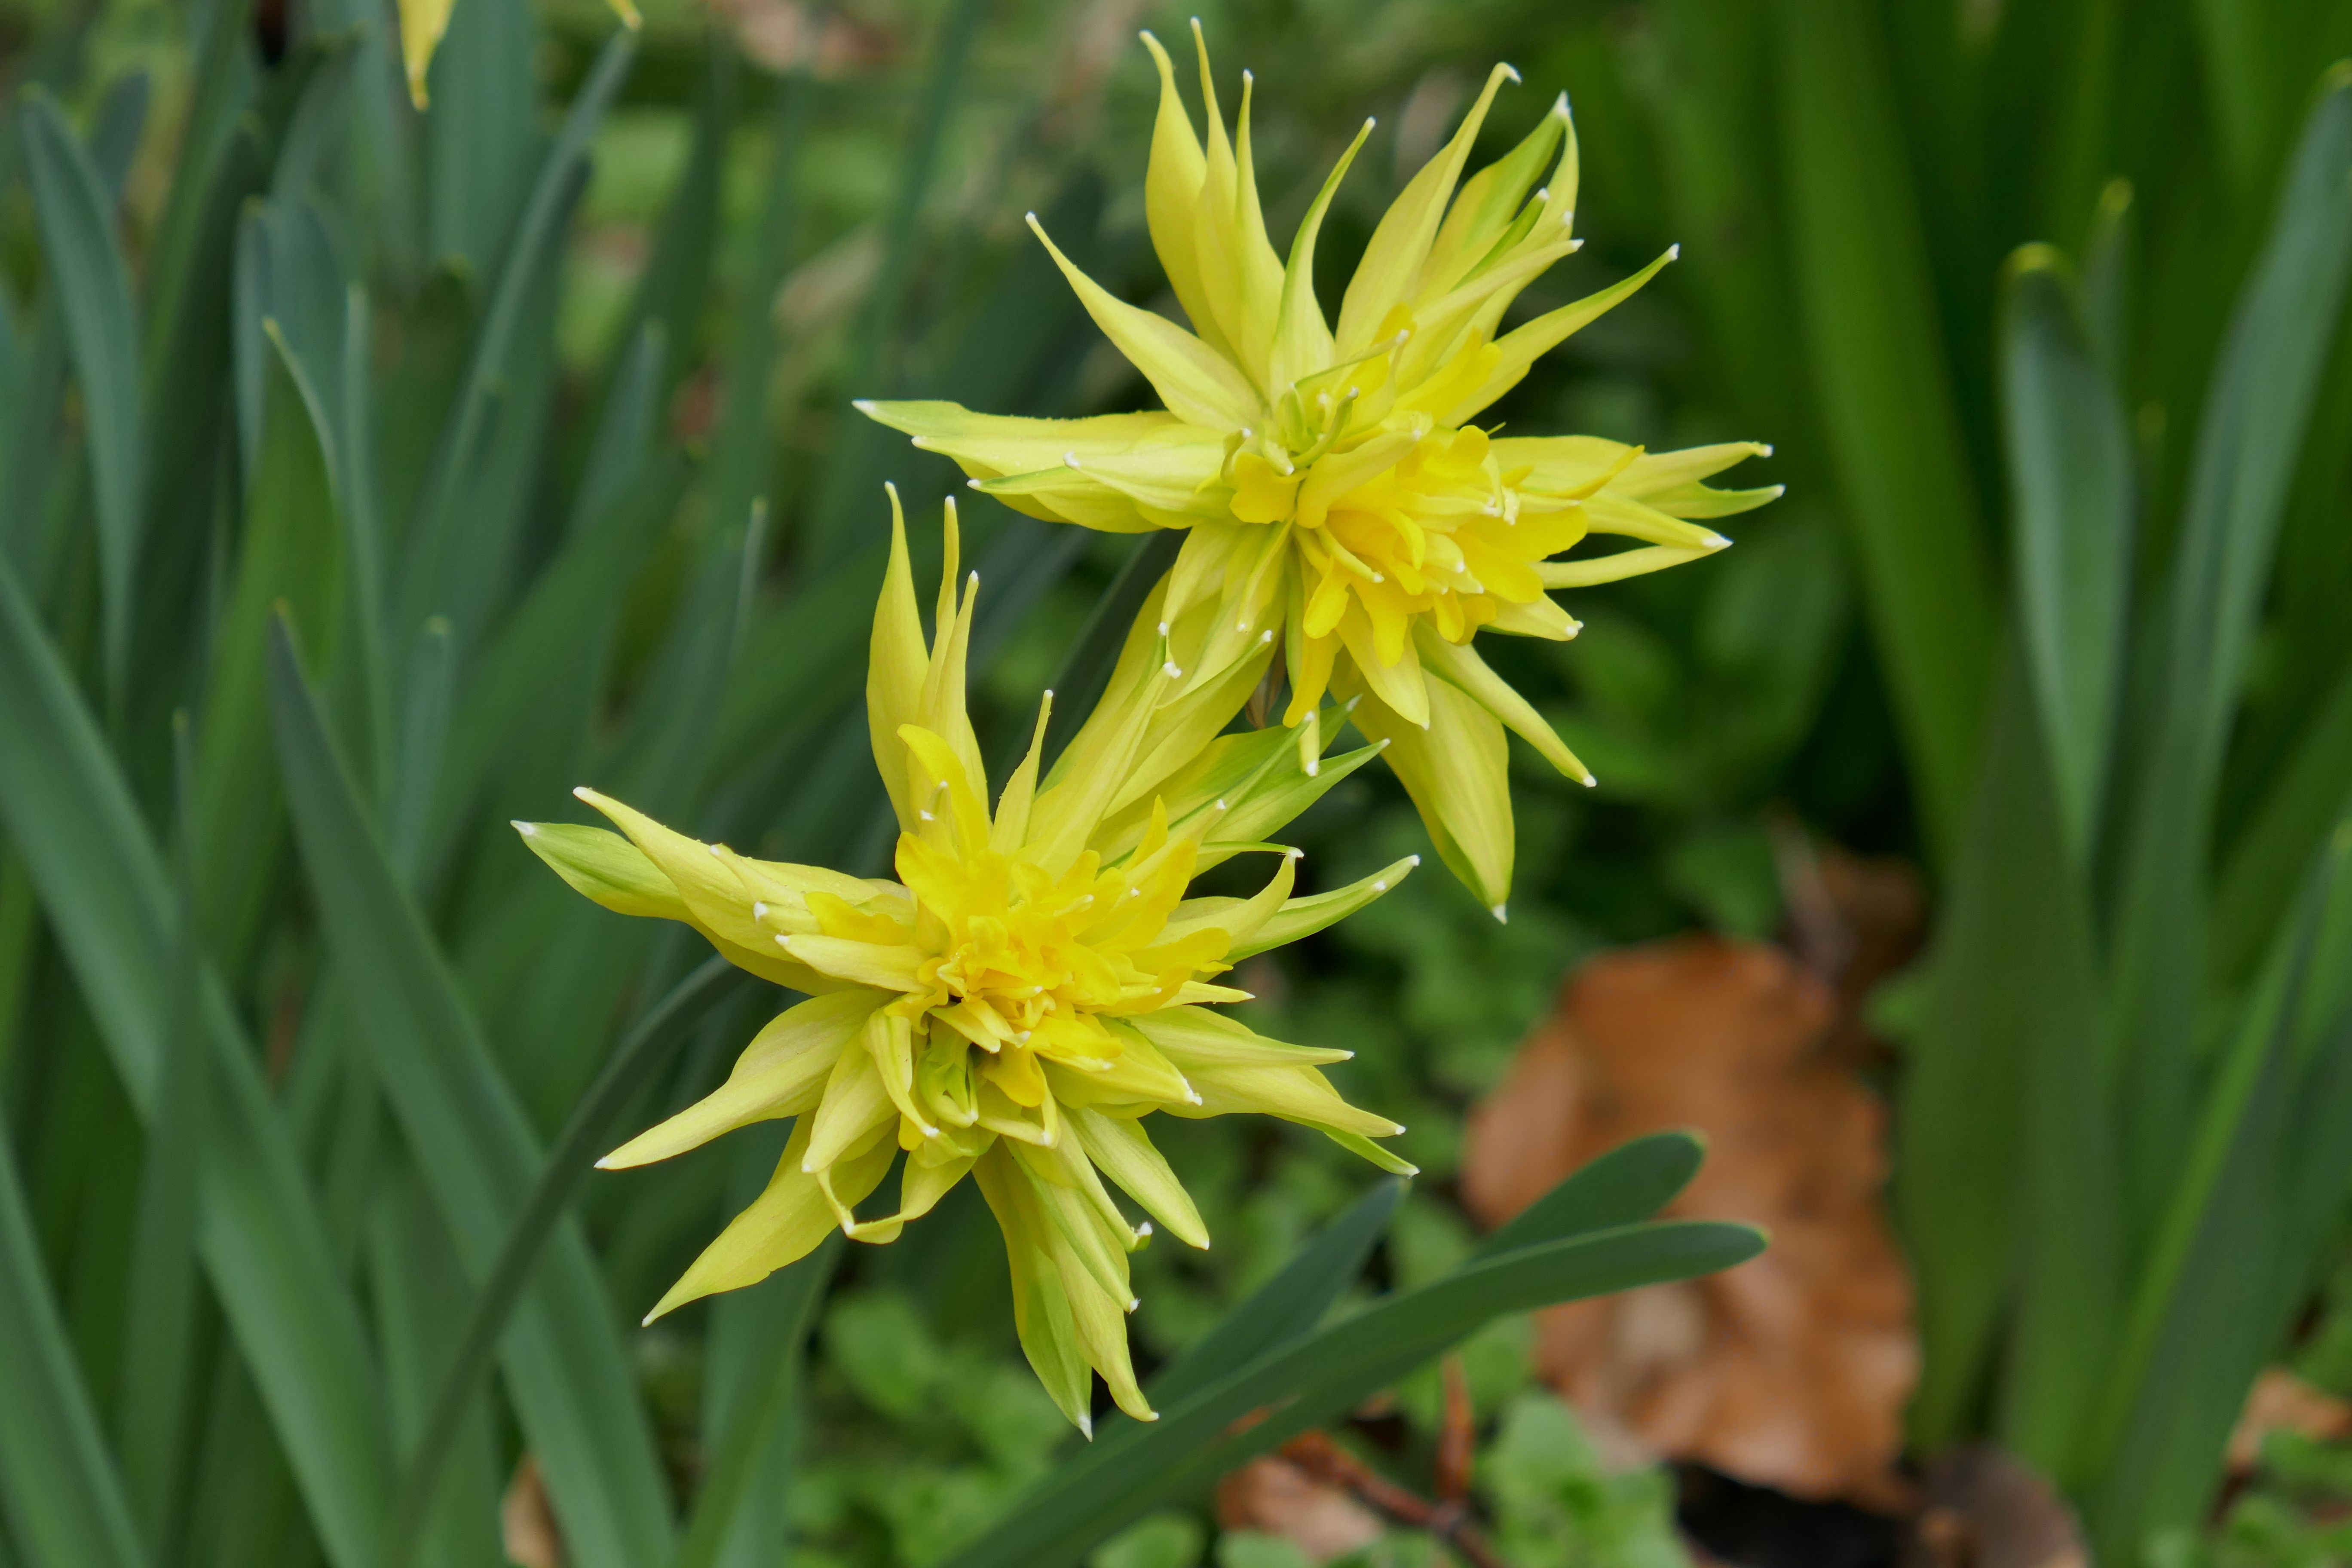 narcissus rip van winkle dwarf daffodil early to flower planting